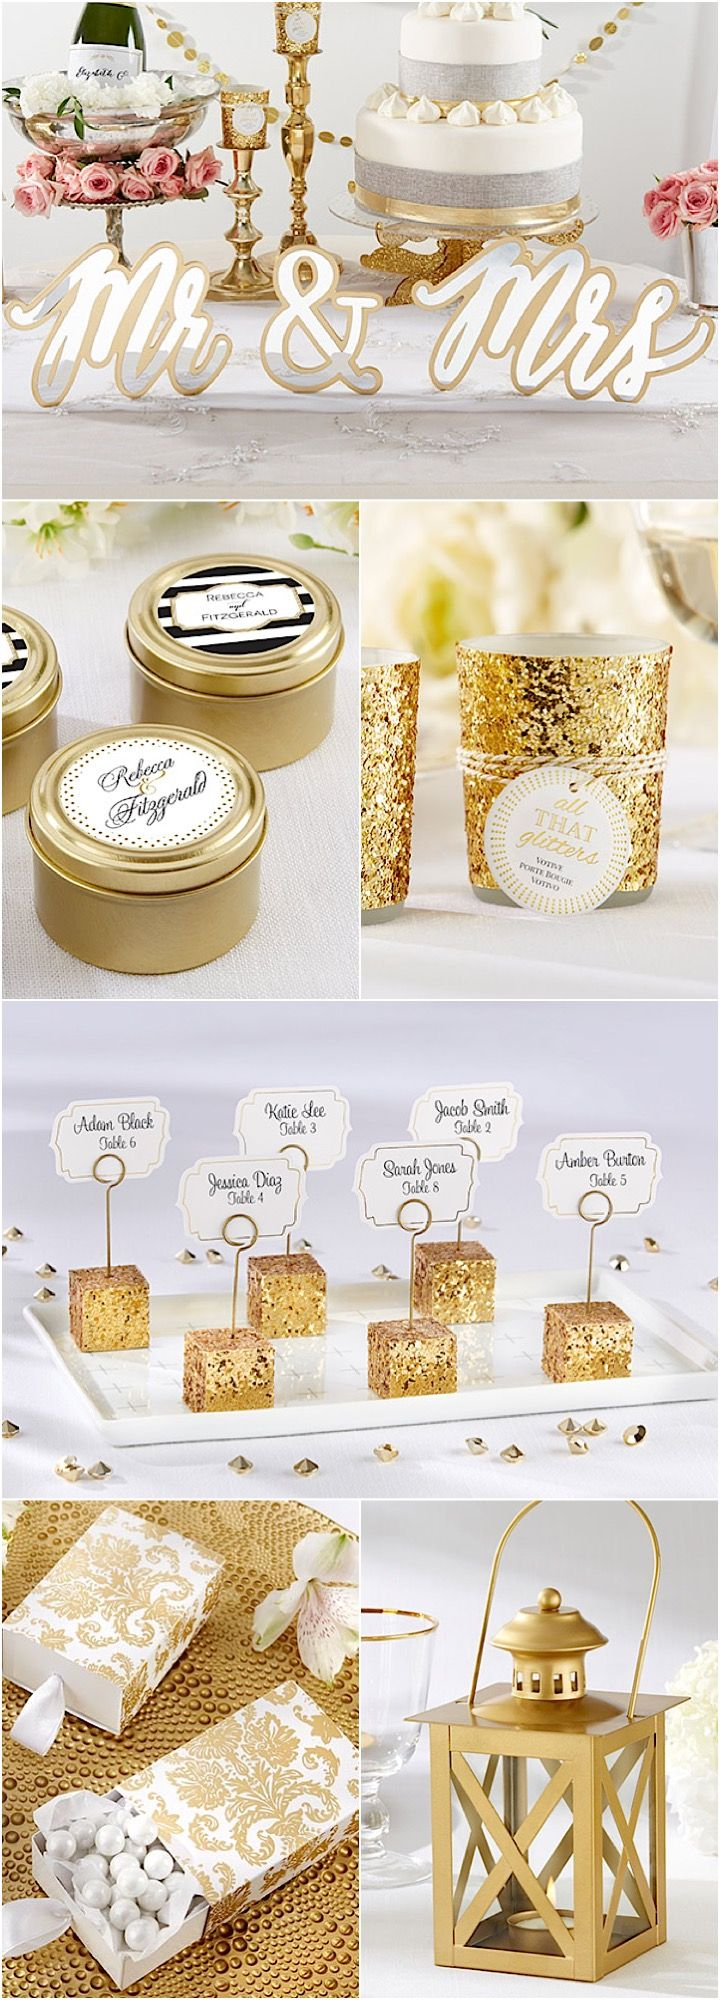 wedding gift card holders%0A GIVEAWAY  Win a      gift card to Kate Aspen with the cutest wedding decor  and